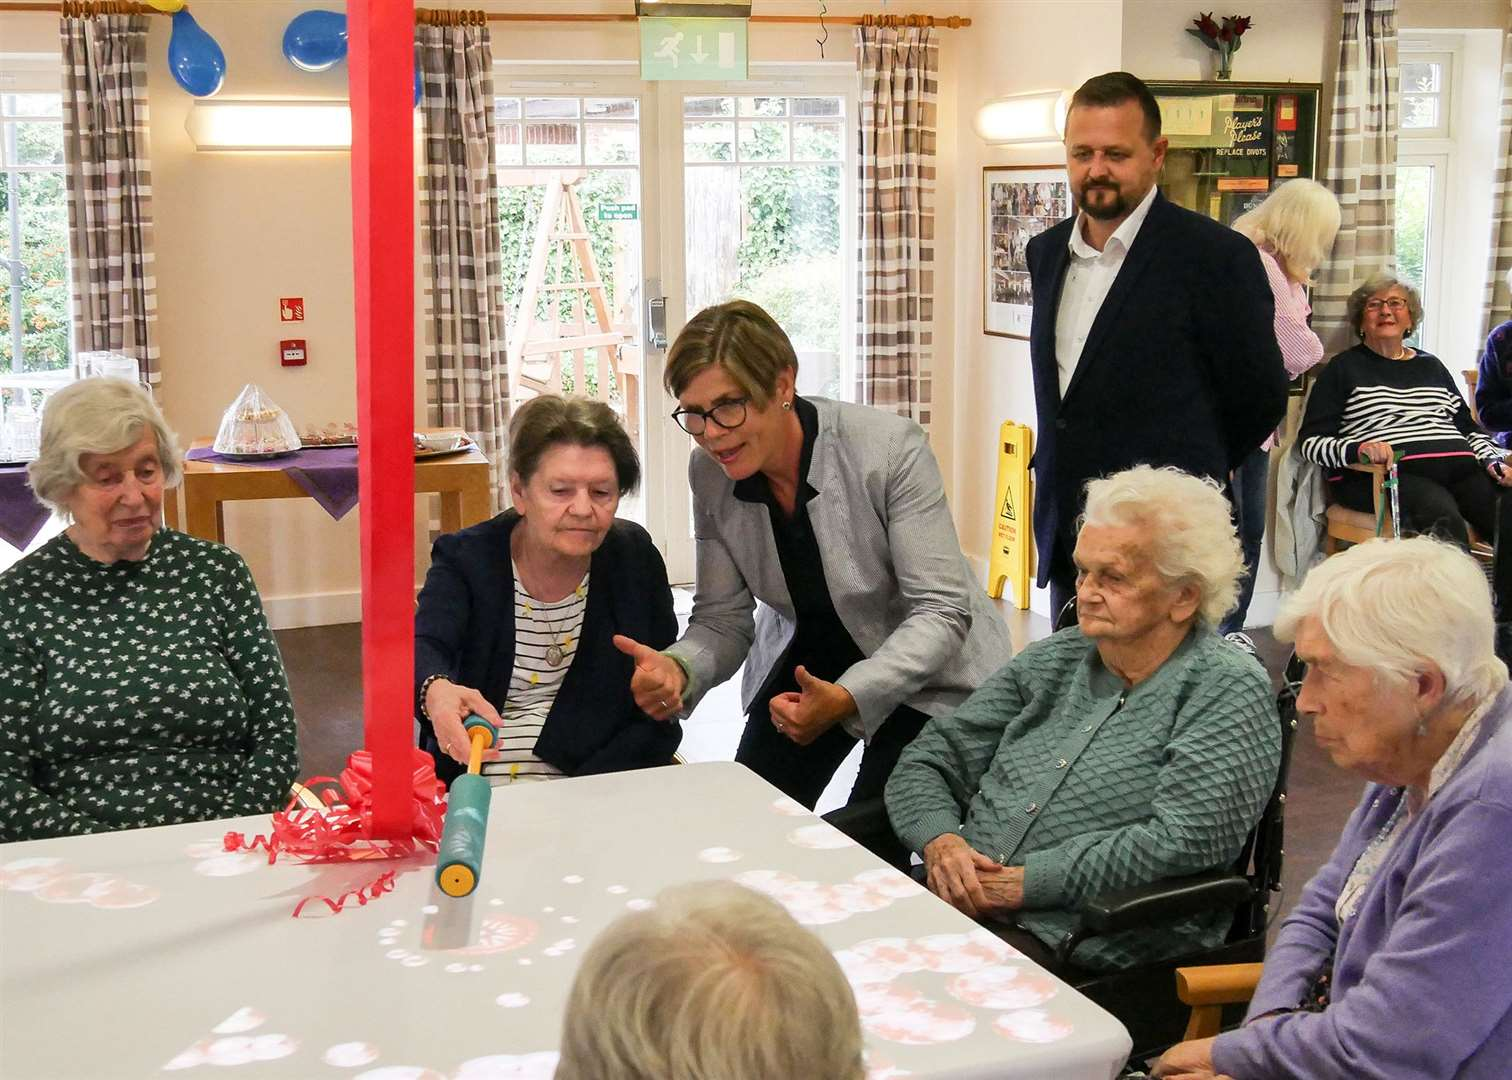 Rutland Care Village residents try out their new magic table watched by former Rutland Lions president Julie Rolland and care home manager Piotr Batory